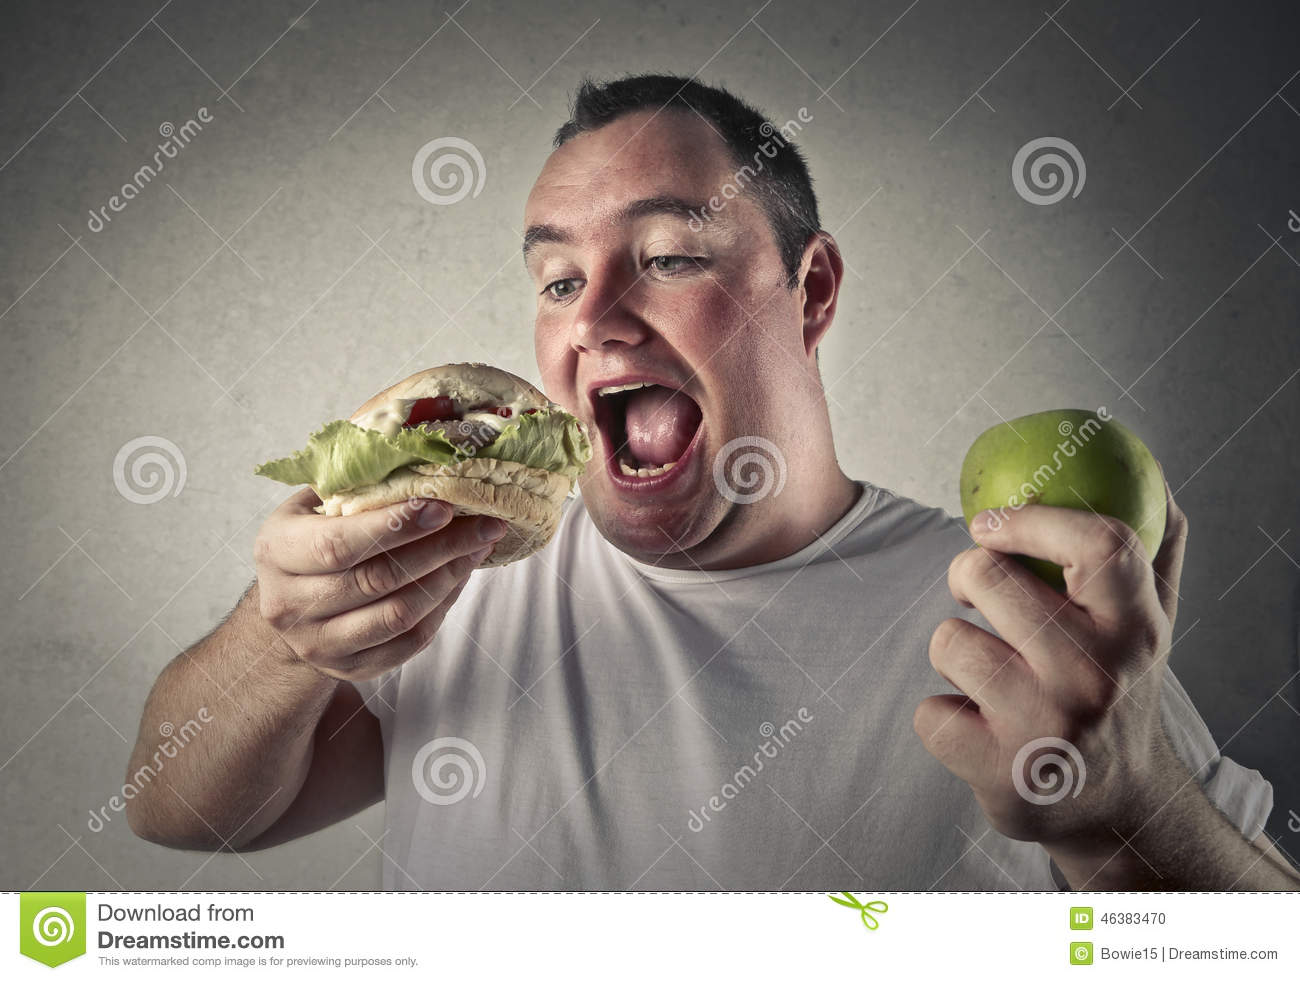 Download Deciding Whether To Eat Healthy Or Not Stock Photo - Image of select, whether: 46383470